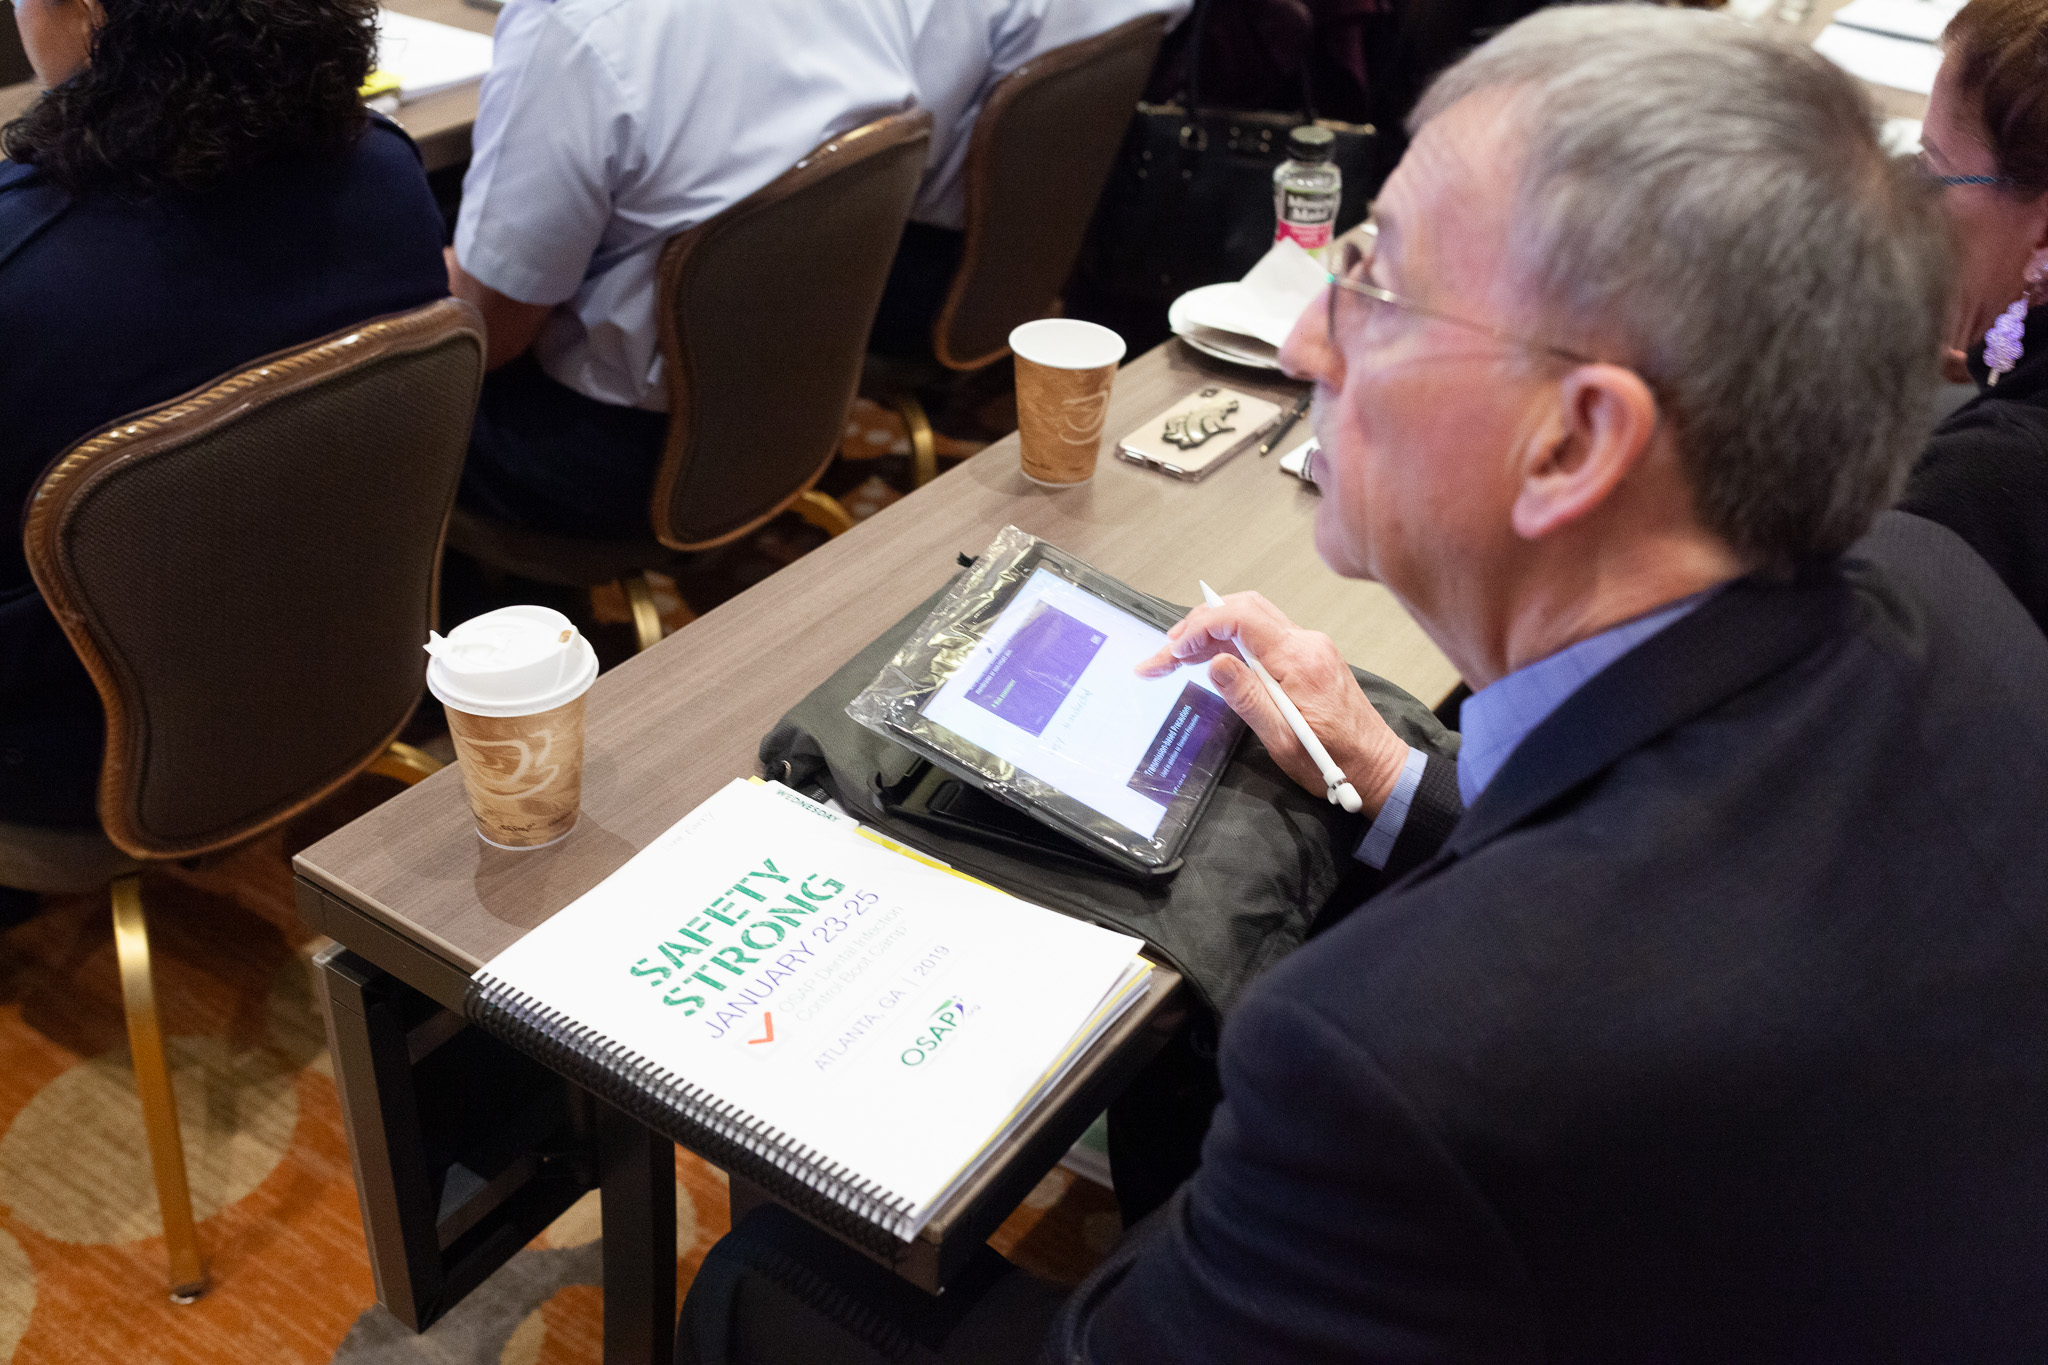 OSAP participant is pictured with his conference guide